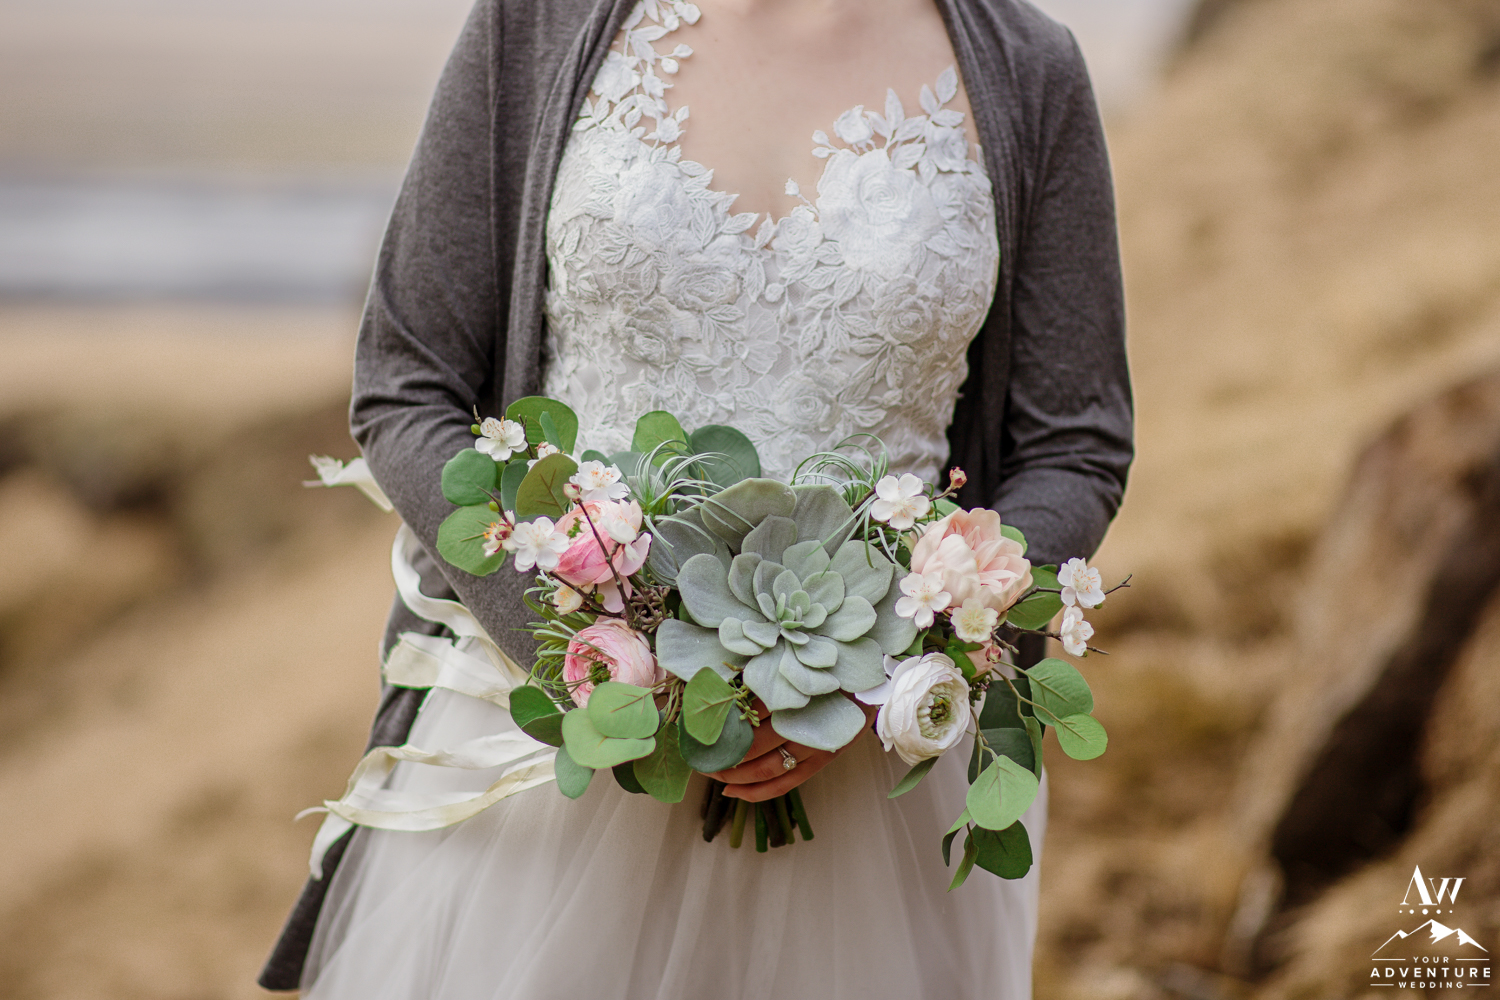 Iceland Wedding Bouquet made from Silk Flowers